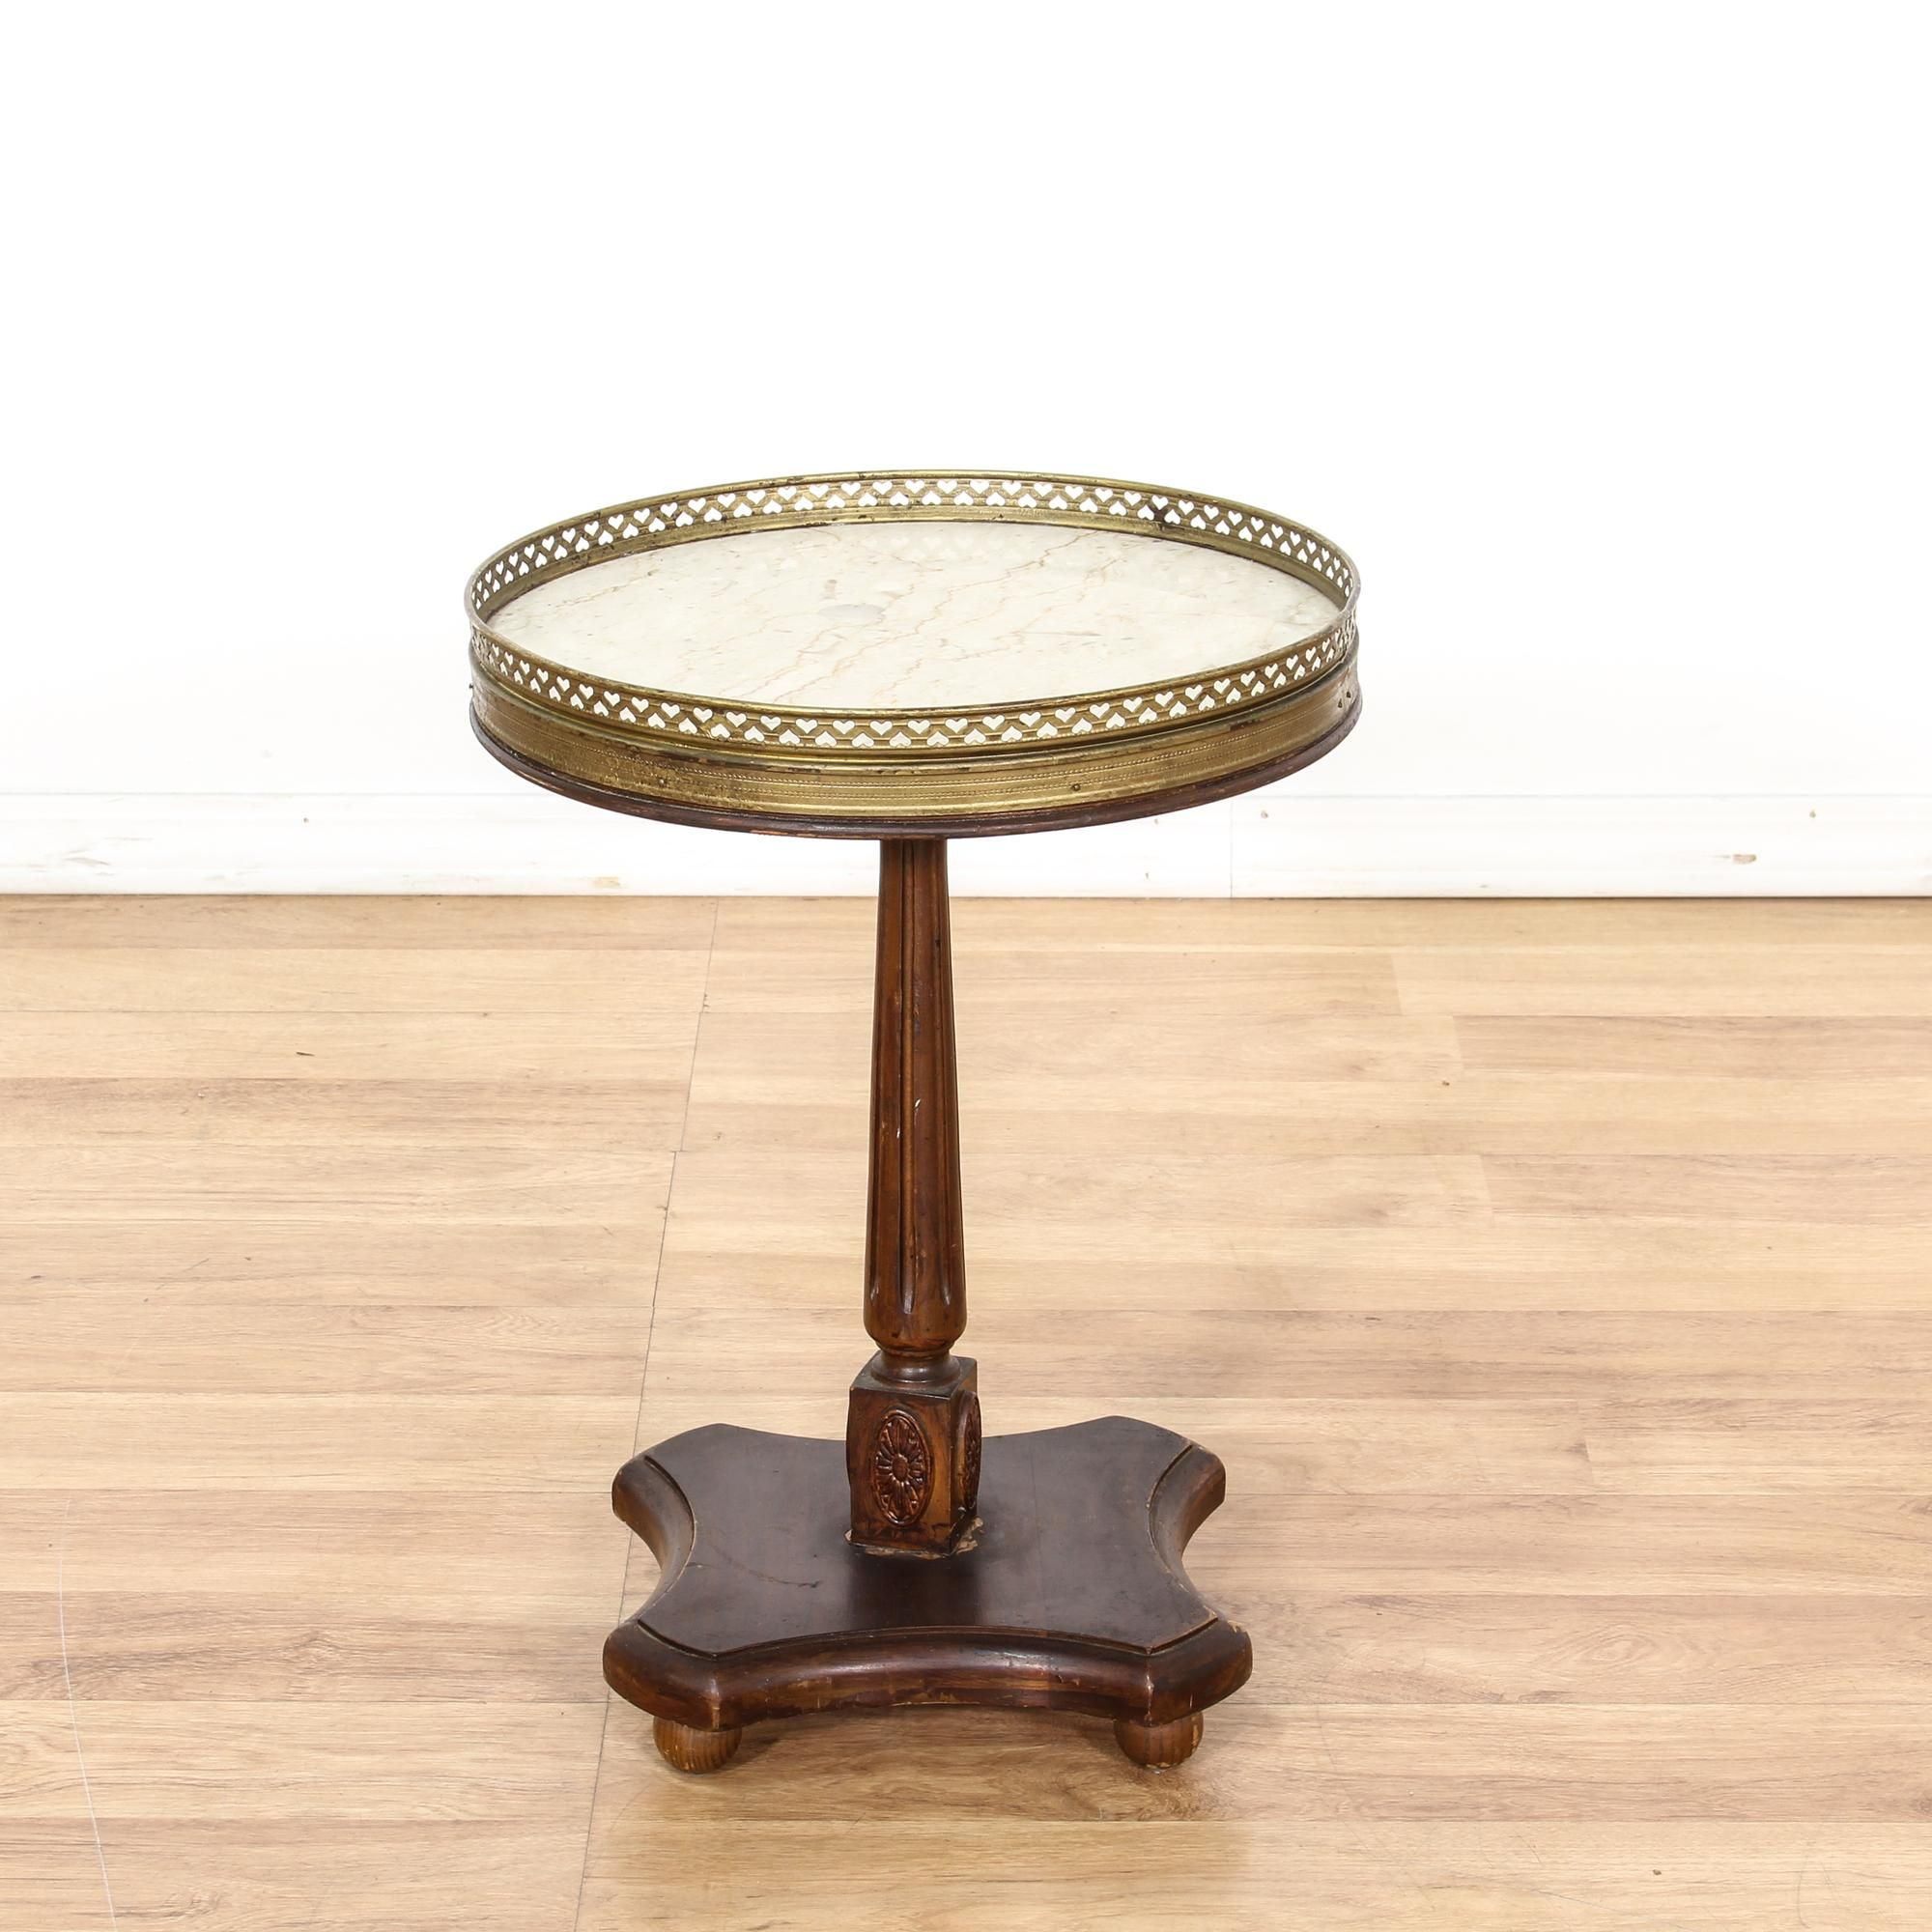 This European Inspired End Table Is Featured In A Solid Wood With A  Distressed Walnut Finish. This Side Table Has A A Round Marble Table Top  With A Carved ...